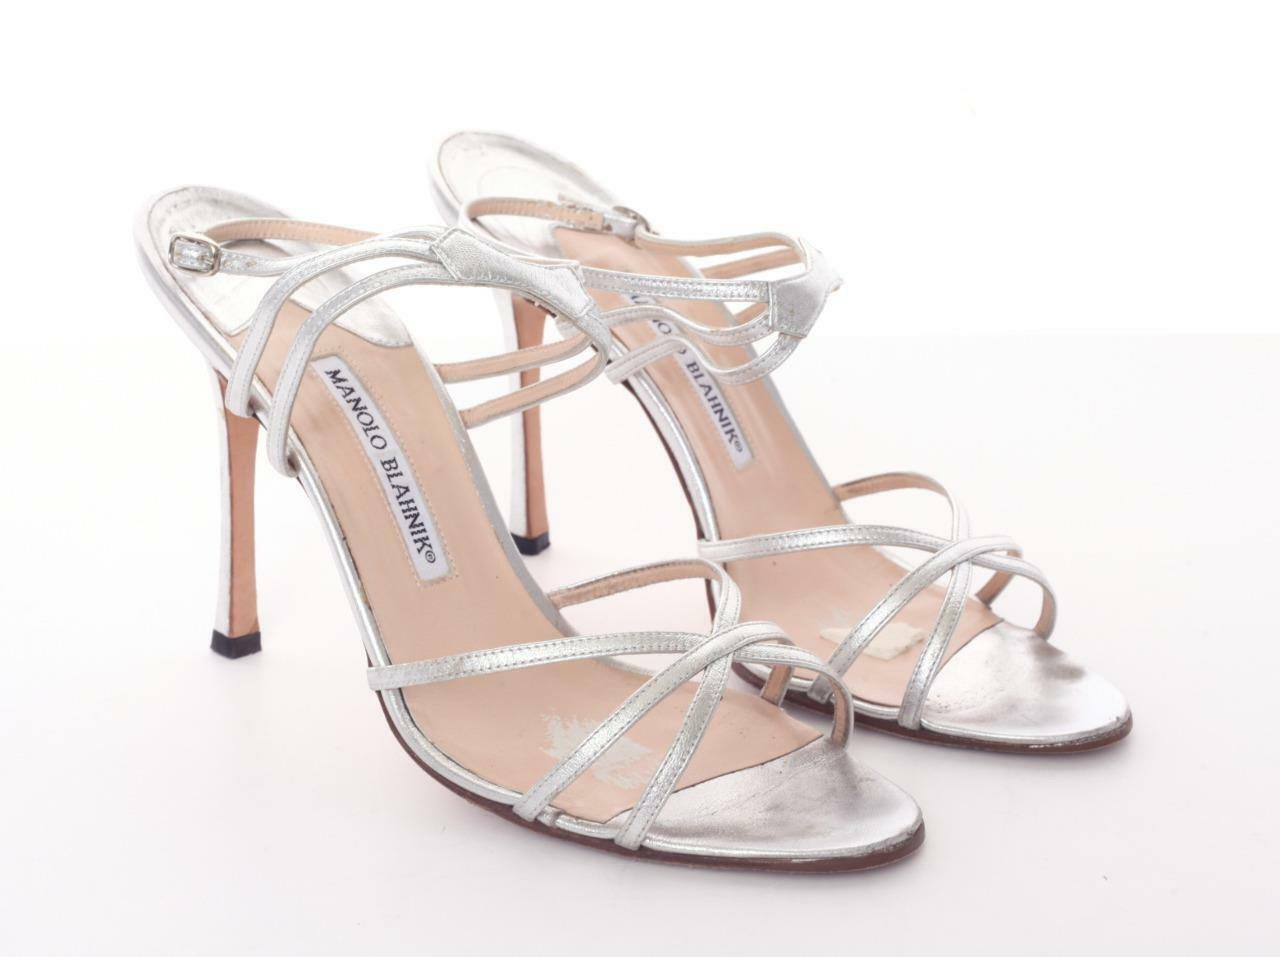 MANOLO BLAHNIK Silber Leather High Heel Multi-Strap Sandal Pump schuhe schuhe schuhe 10-40 a37d59